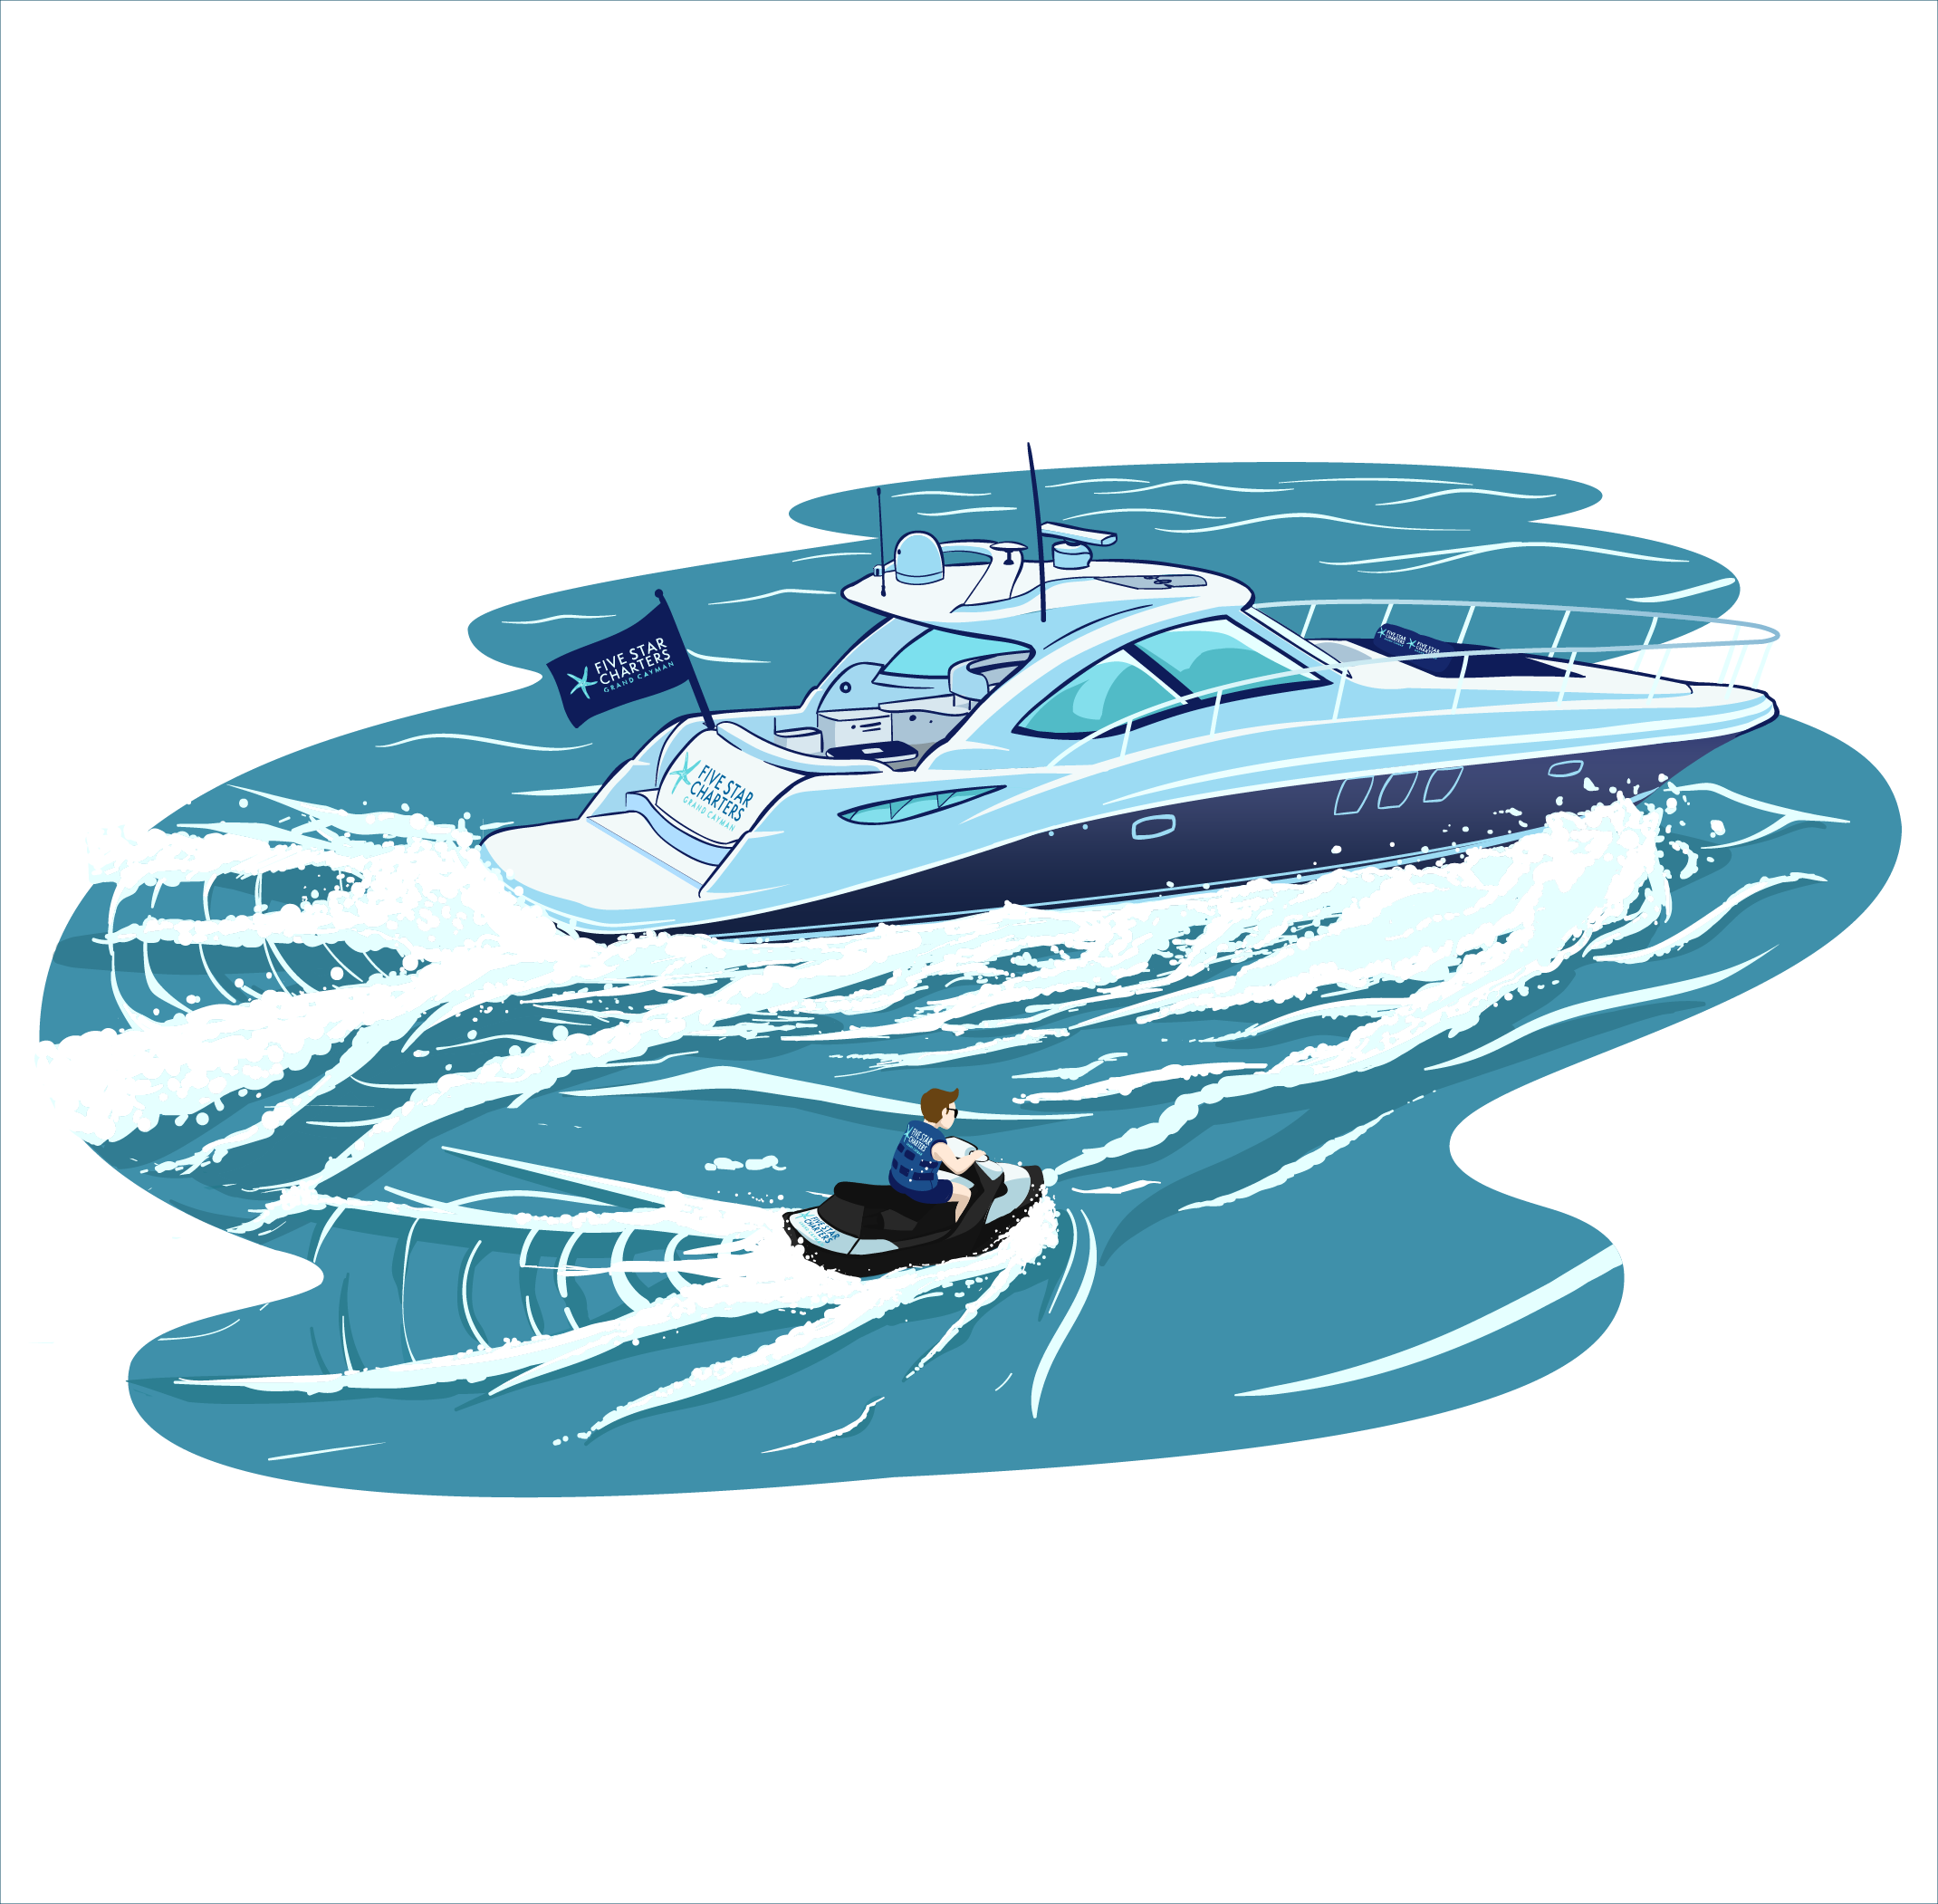 Create a bold illustration of a yacht for a luxury charter business